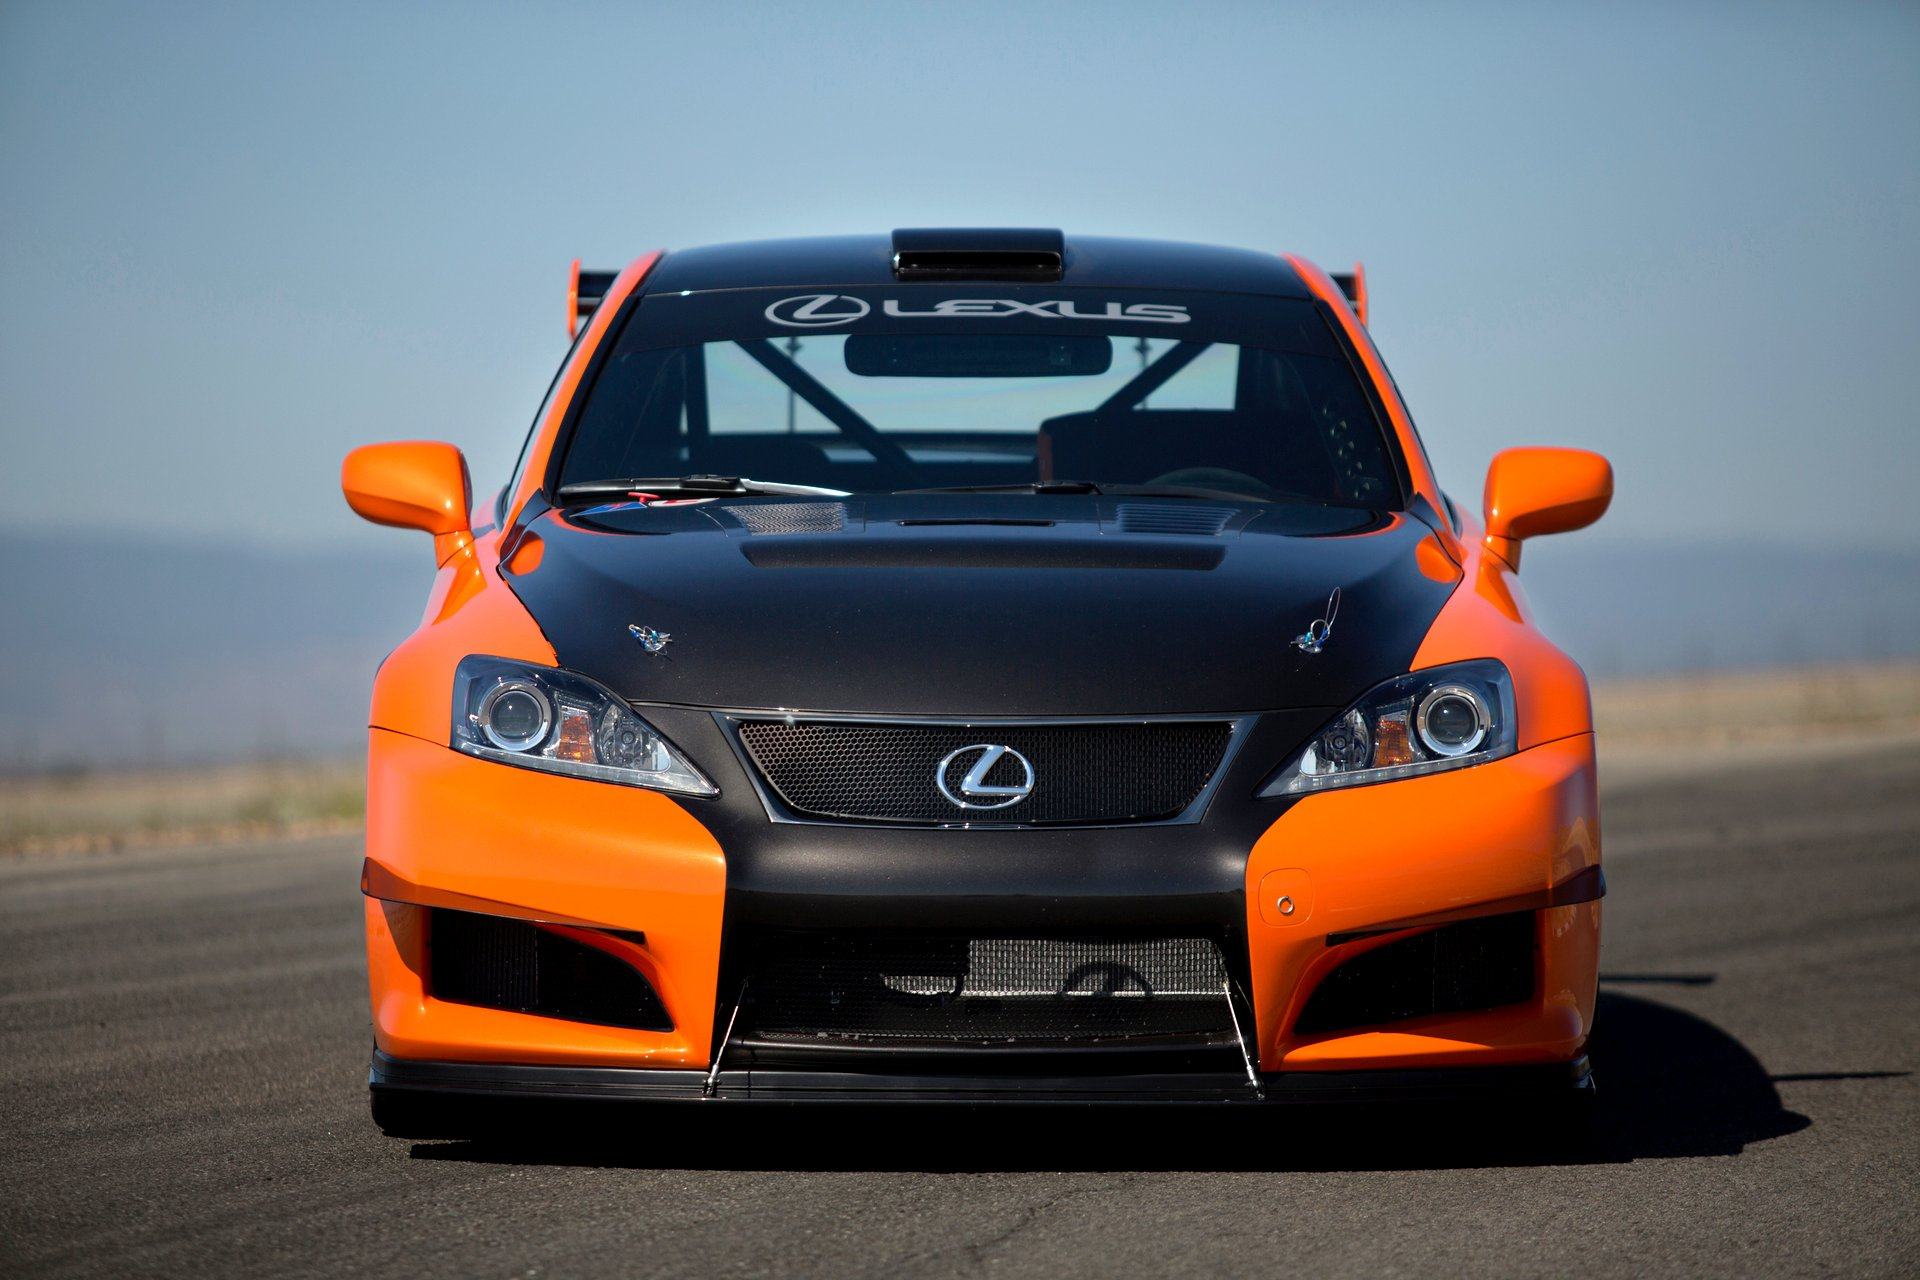 Sports Cars For Sale >> Cheap Sports Cars For Sale Near Me Fresh Caring For Sports Cars